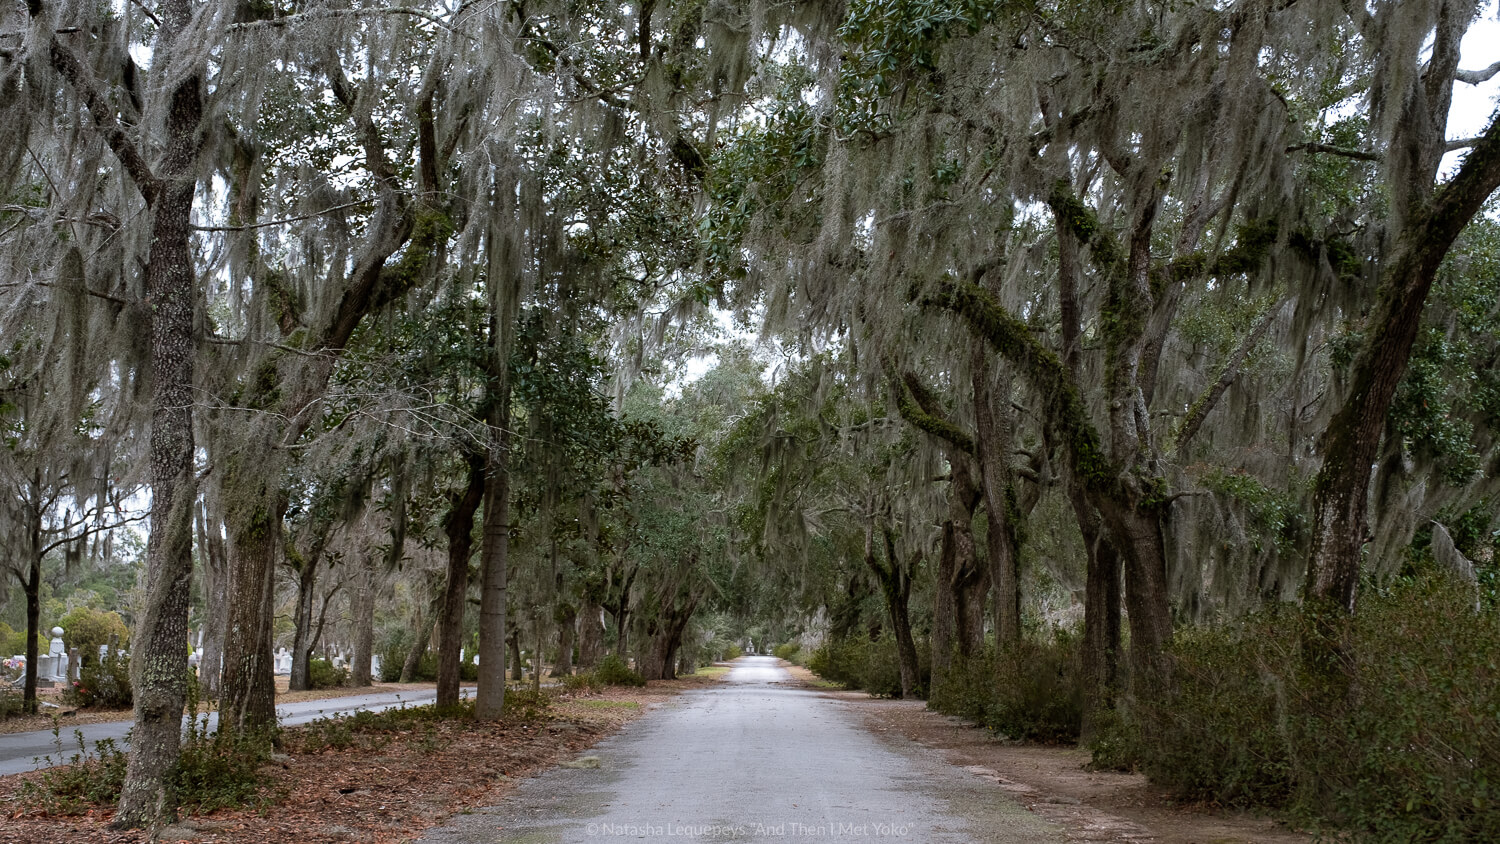 """Road with live oaks at Bonaventure Cemetery in Savannah, Georgia. Travel photography and guide by © Natasha Lequepeys for """"And Then I Met Yoko"""". #bonaventurecemetery #savannah #travelguide #travelblog #travelphotography #fujifilm"""